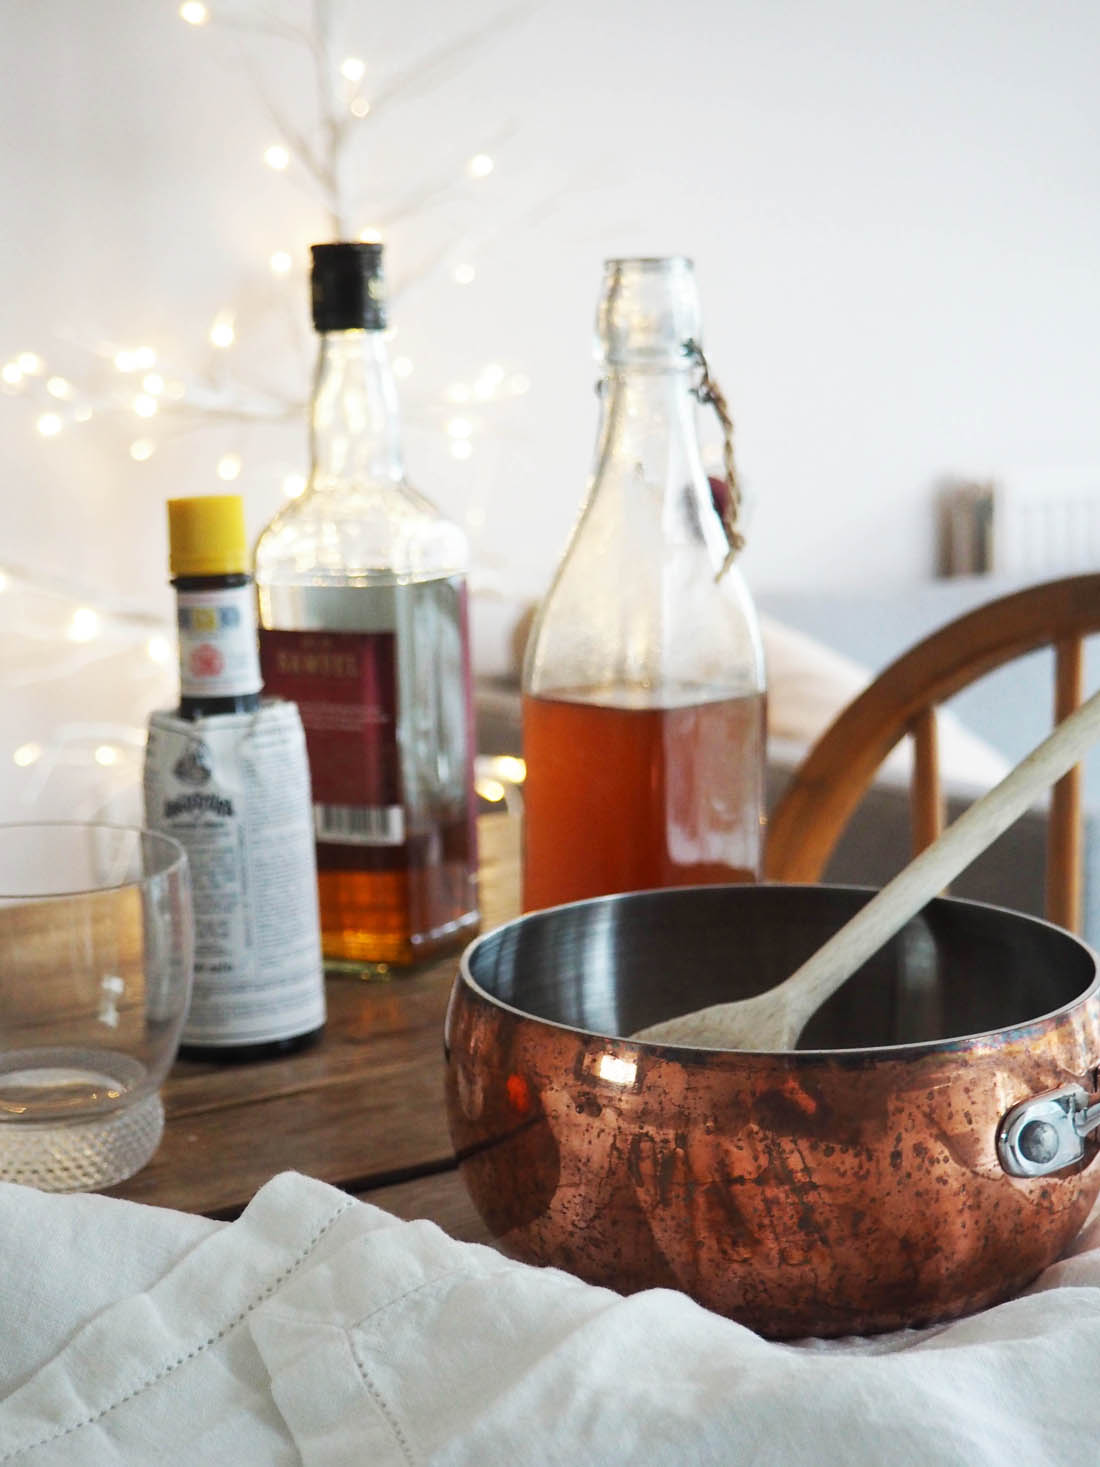 The perfect mince pie and drink for Santa | Villeroy and Boch glasses and Christmas crockery | Spiced sugar syrup festive old fashioned recipe | Apartment Apothecary